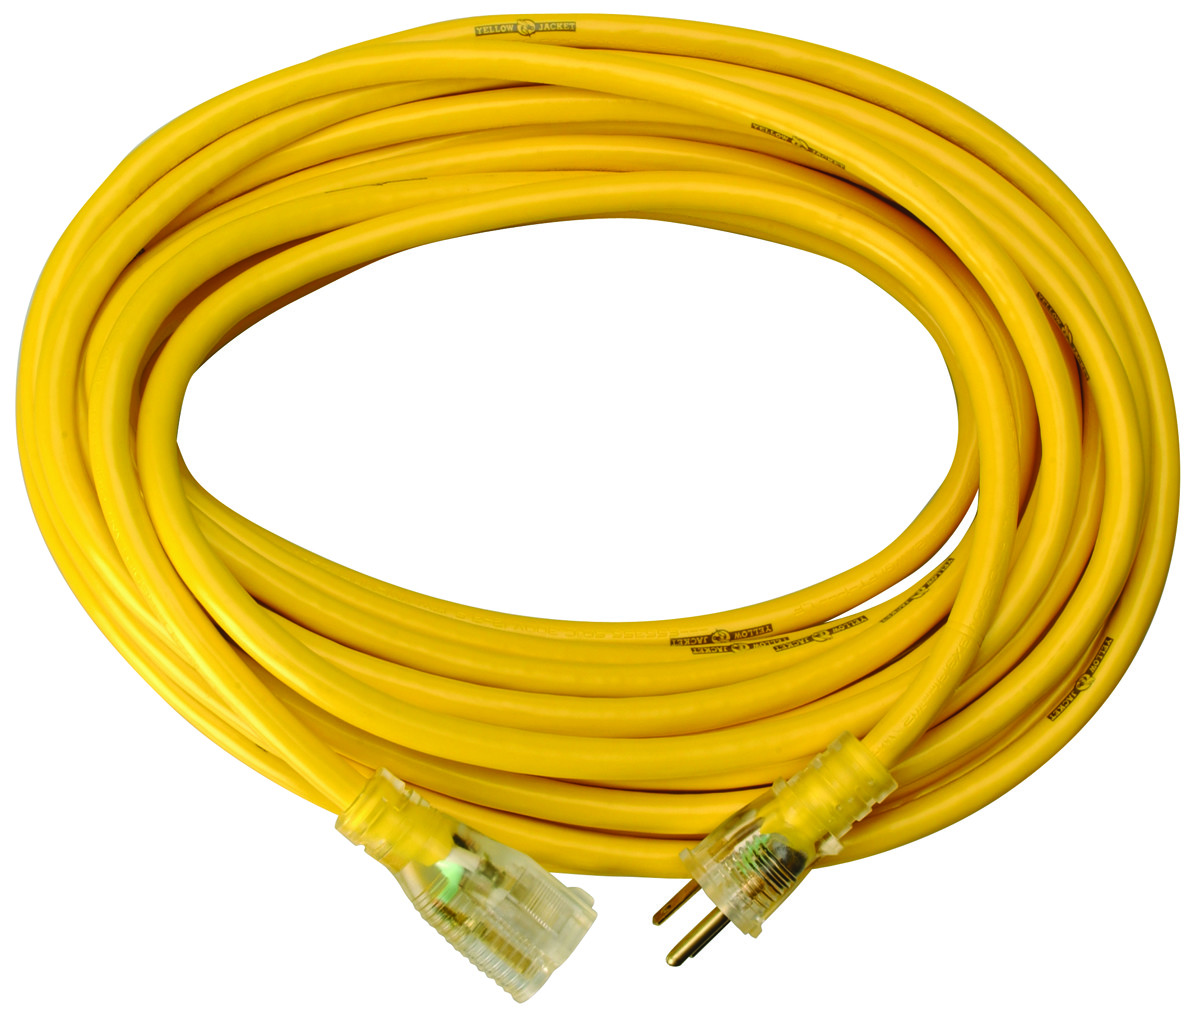 Coleman Cable 2991 Yellow Jacket 10/3 By 50 Foot T Blade Extension ...